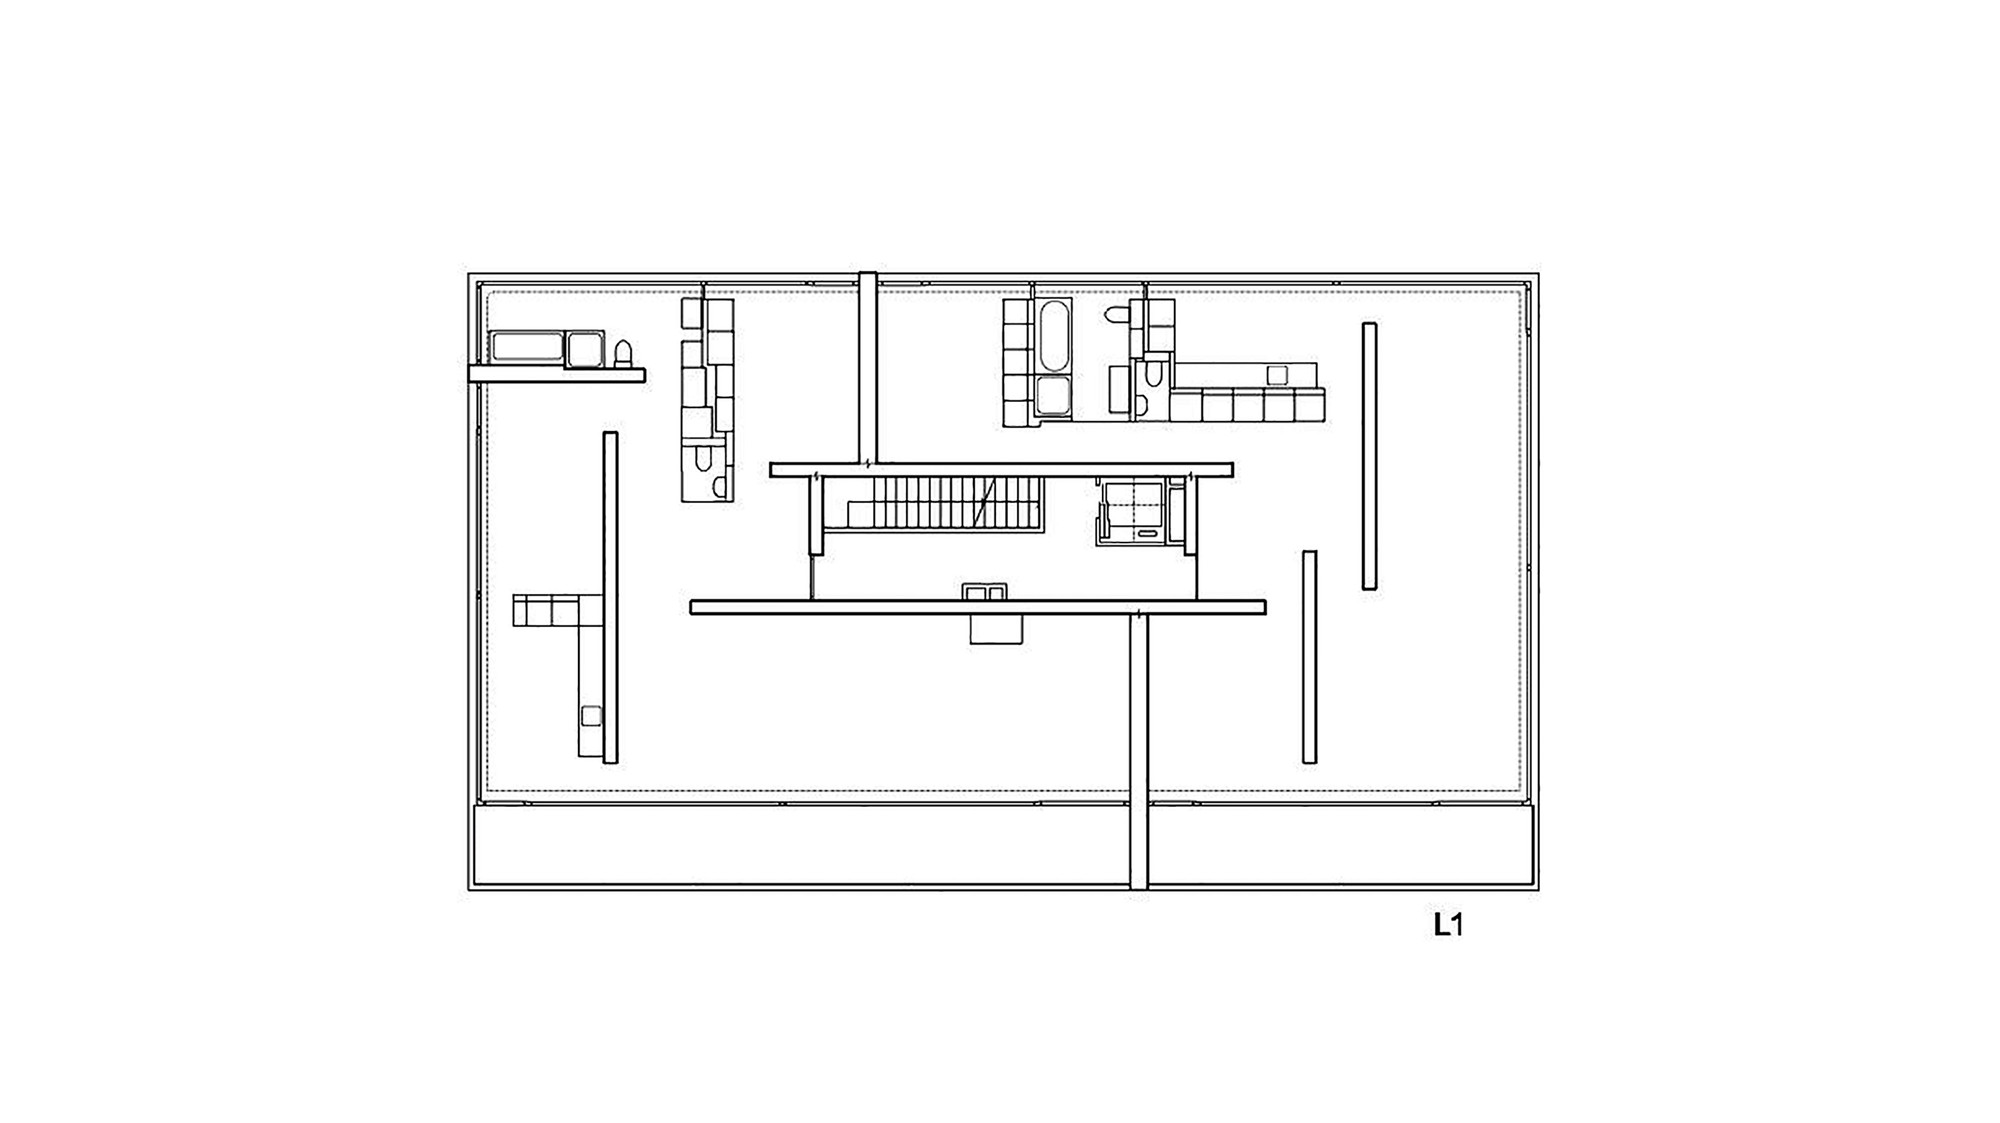 Plan details also Emerson Rowhouse Meridian 105 Architecture moreover Fp Efficiency furthermore Studio Apartments 300 Square Feet Floor Plan together with Ad Classics Lafayette Park Mies Van Der Rohe. on garage apartment